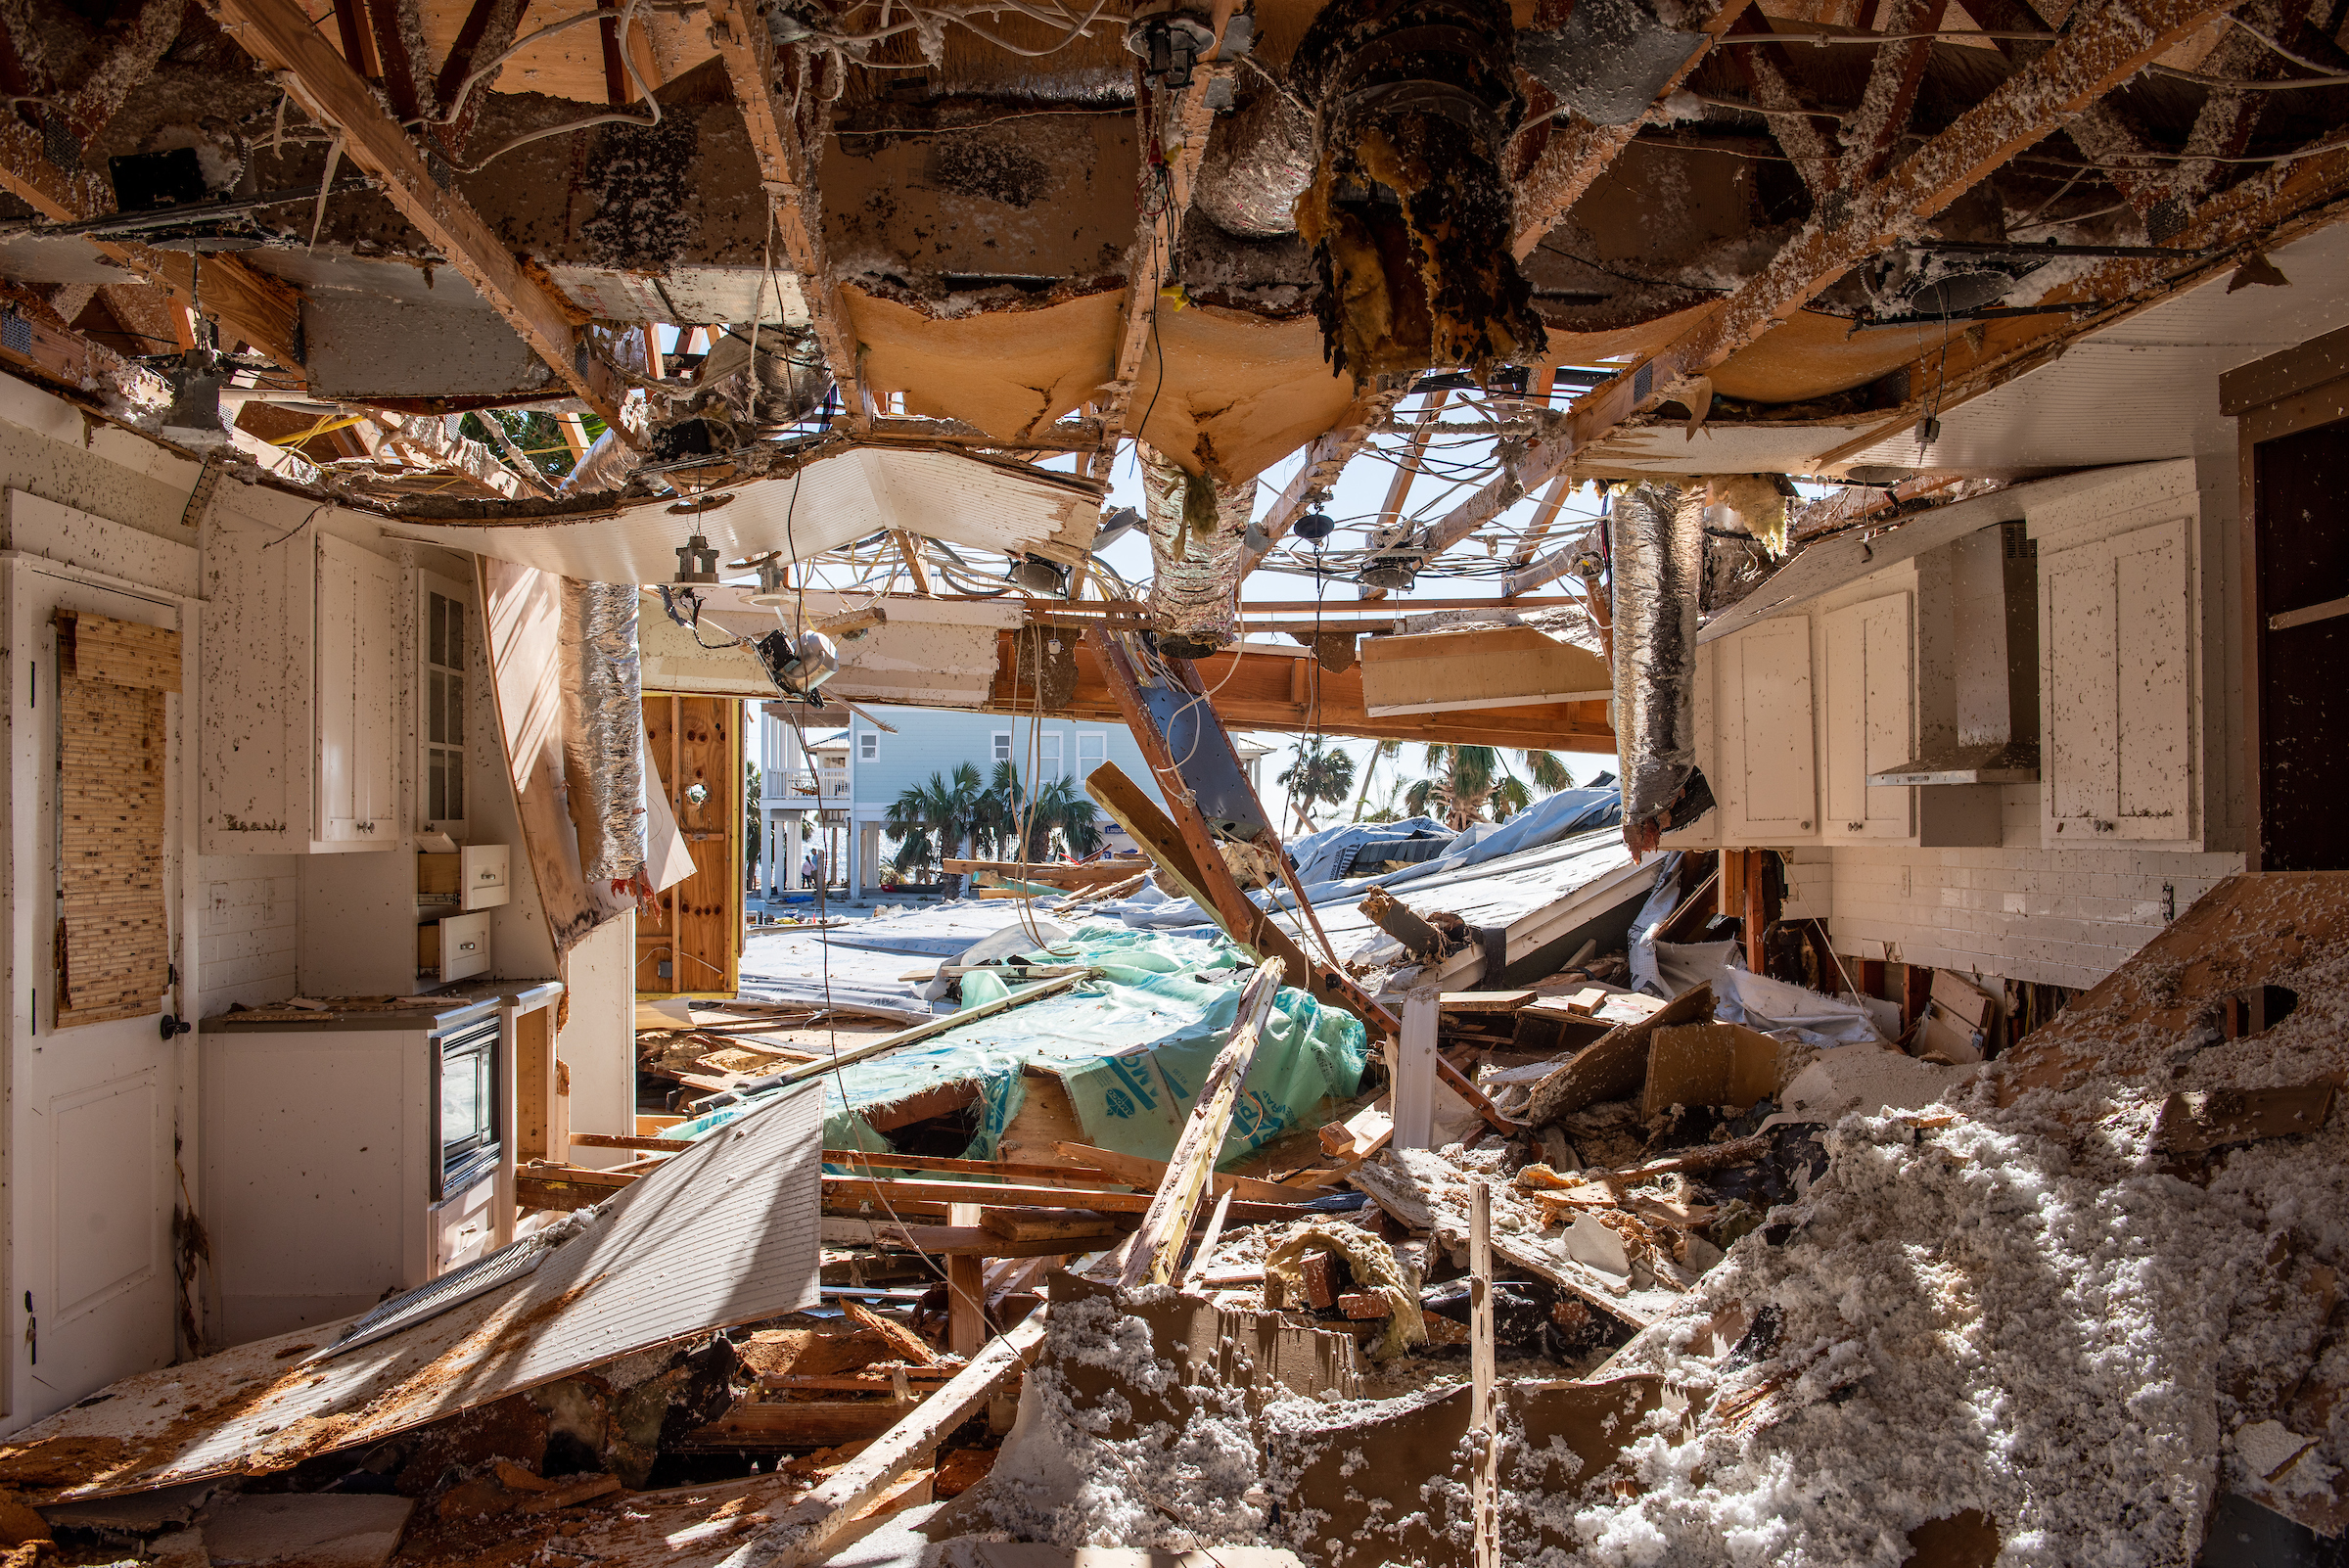 Destruction to a home from Hurricane Michael on Tuesday, Oct. 16, 2018, in Mexico Beach, Fla. LCMS Communications/Erik M. Lunsford